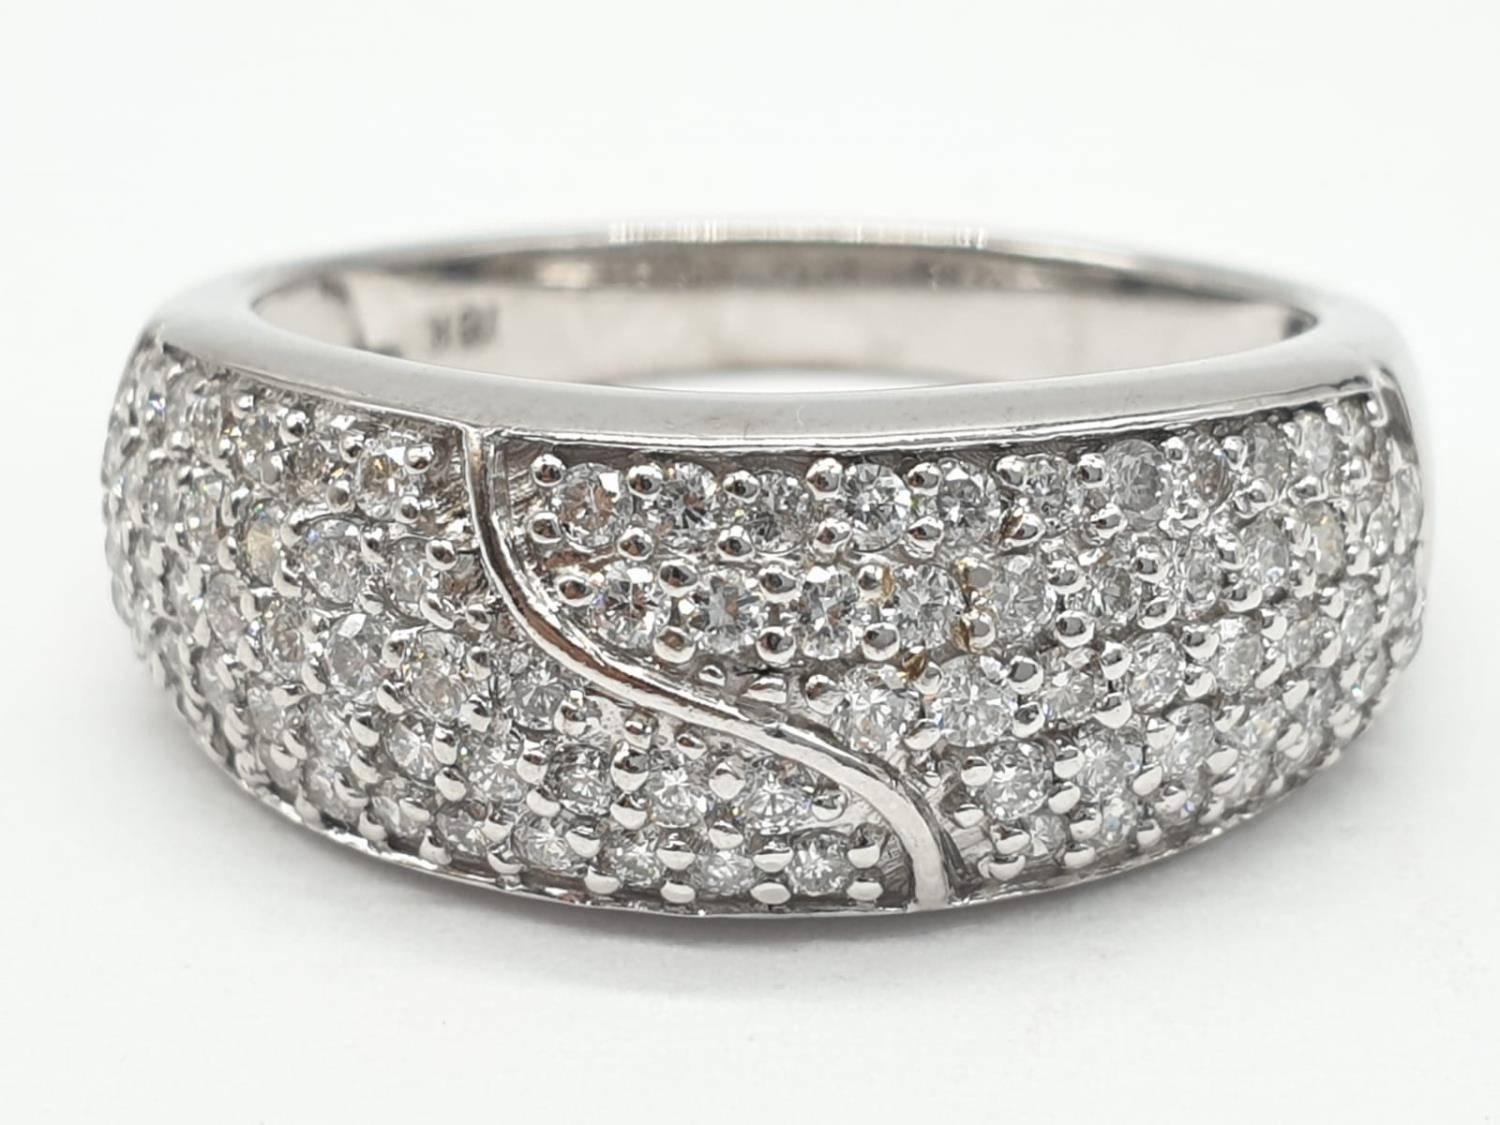 18ct diamond encrusted stylist ring. Weighs 5.6g and is a size O.